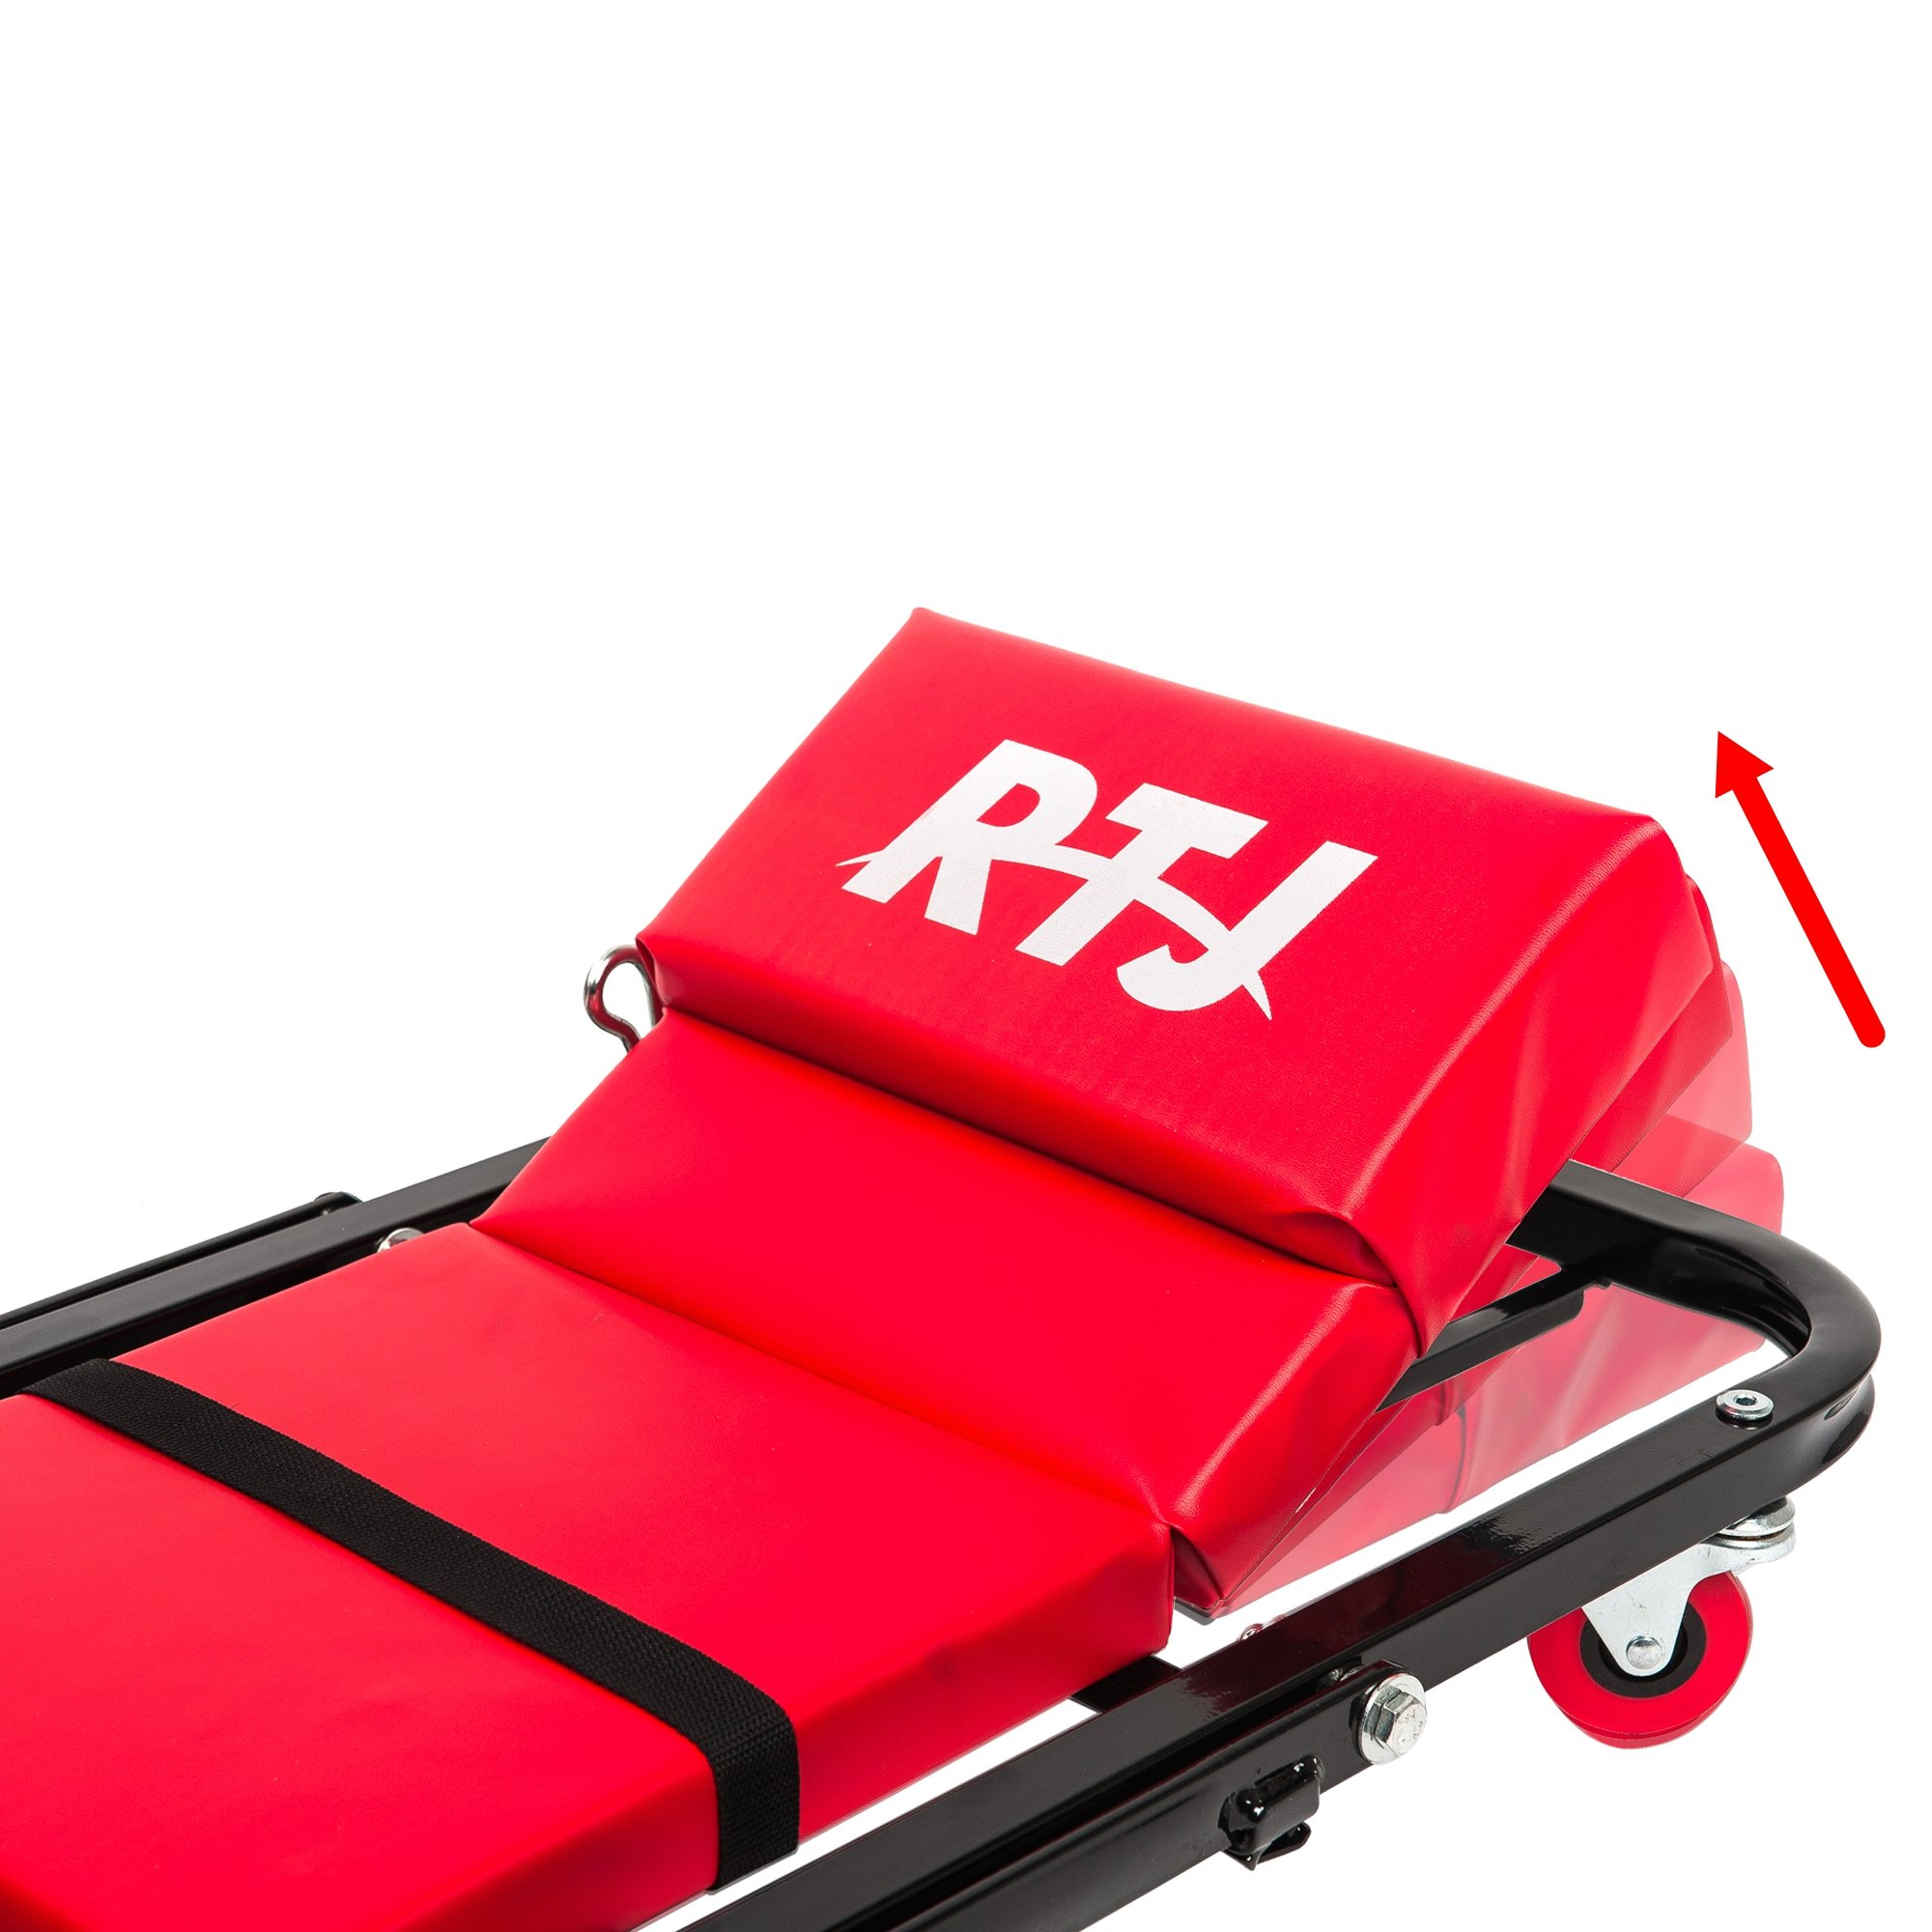 RTJ 47 Inch N-Creeper Seat with Adjustable Headrest, Red by RTJ (Image #3)